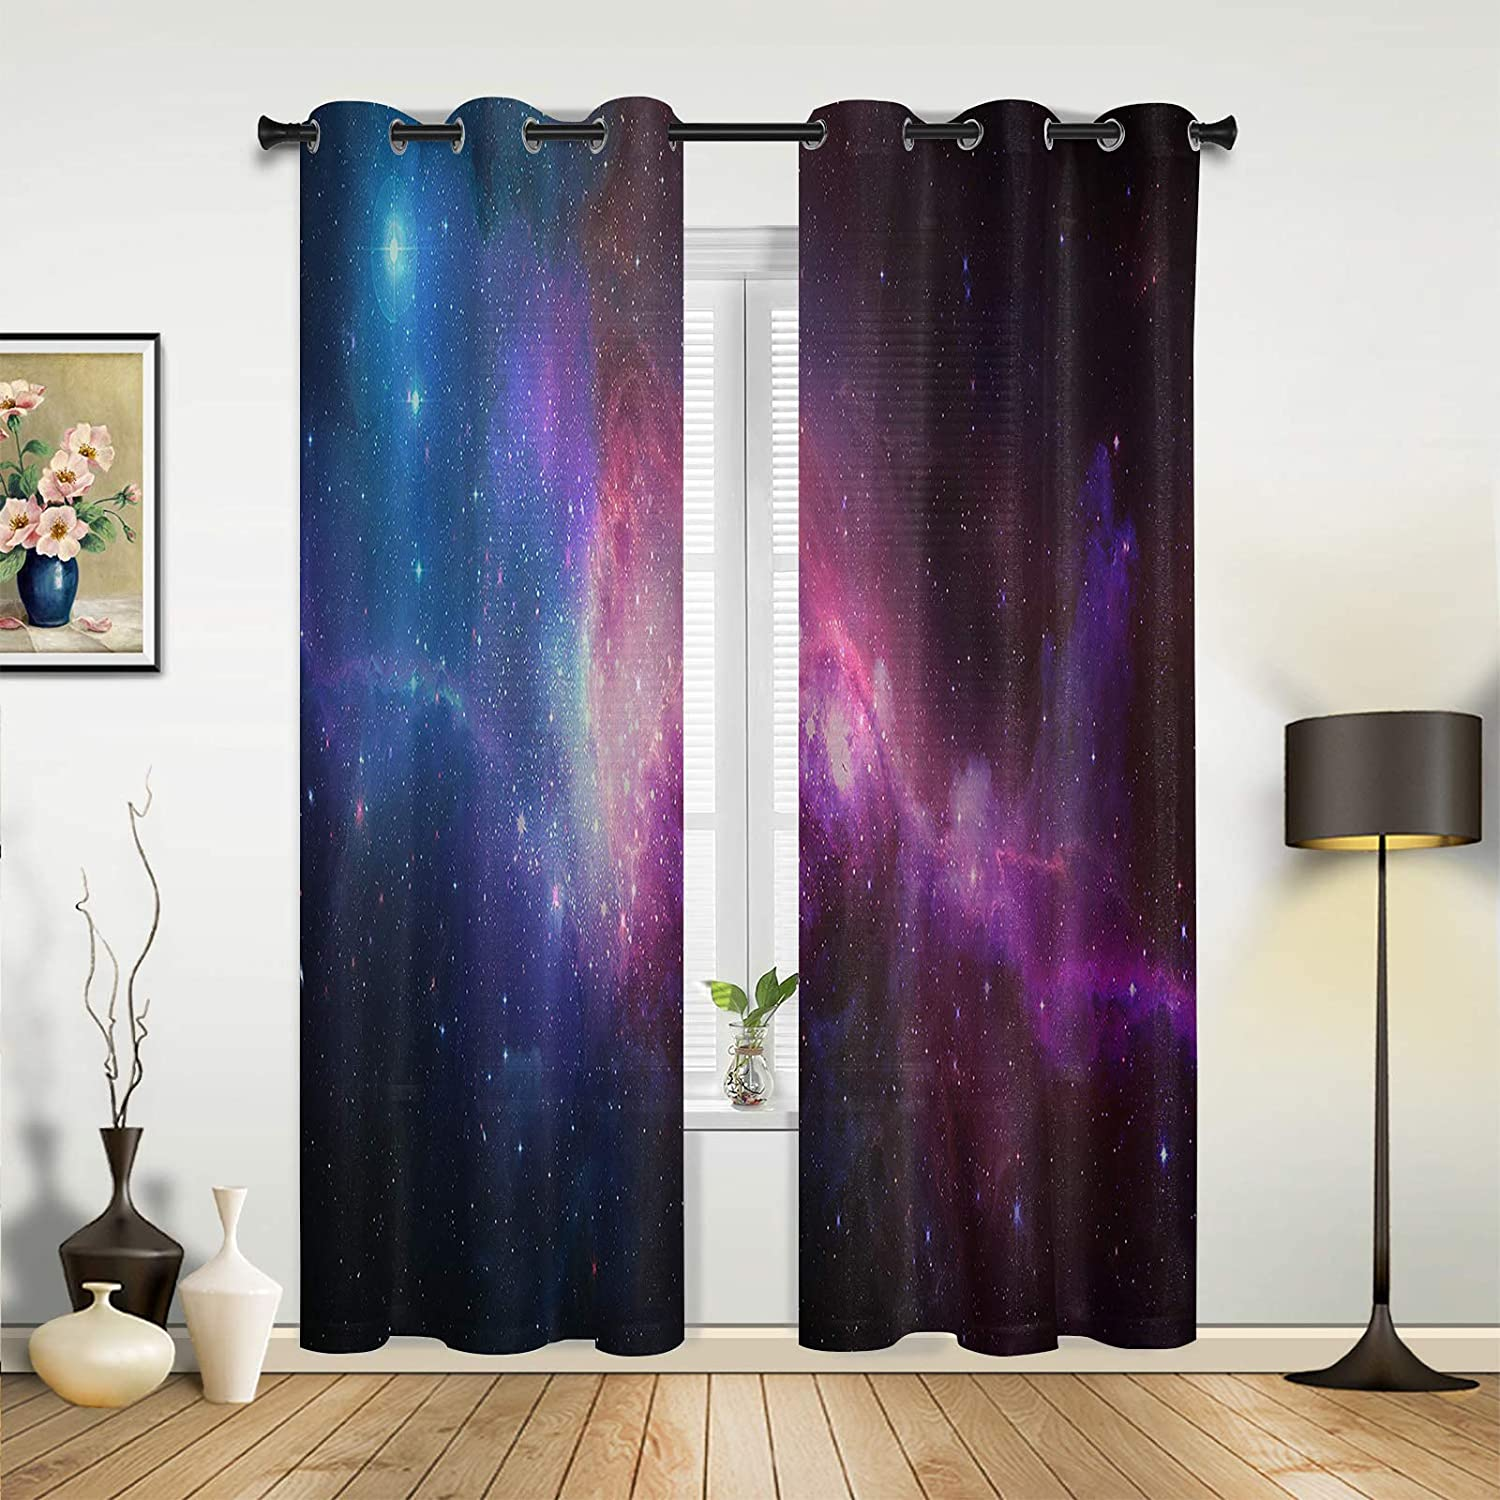 Cheap mail order shopping Window Sheer Curtains for Jacksonville Mall Bedroom Mysterious Dreamy Room Living